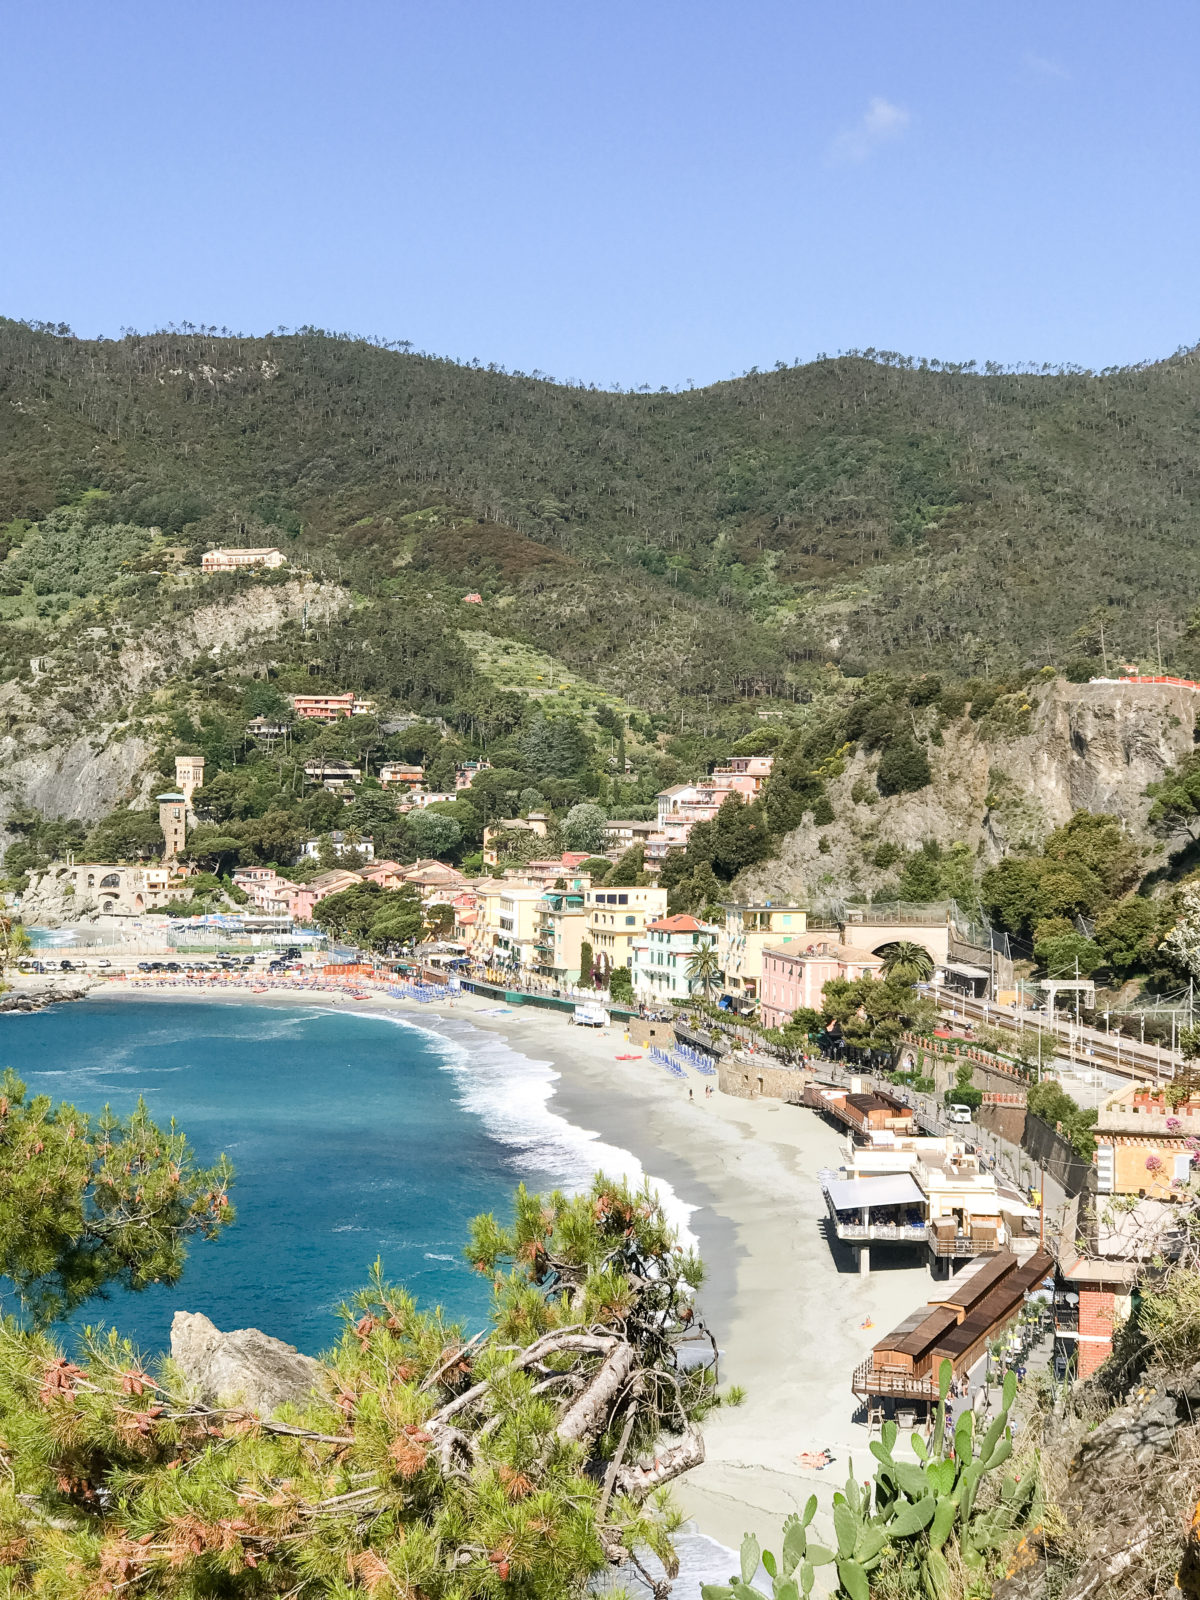 tuscany cinque terre monterosso travel guide, where to stay in Cinque Terre